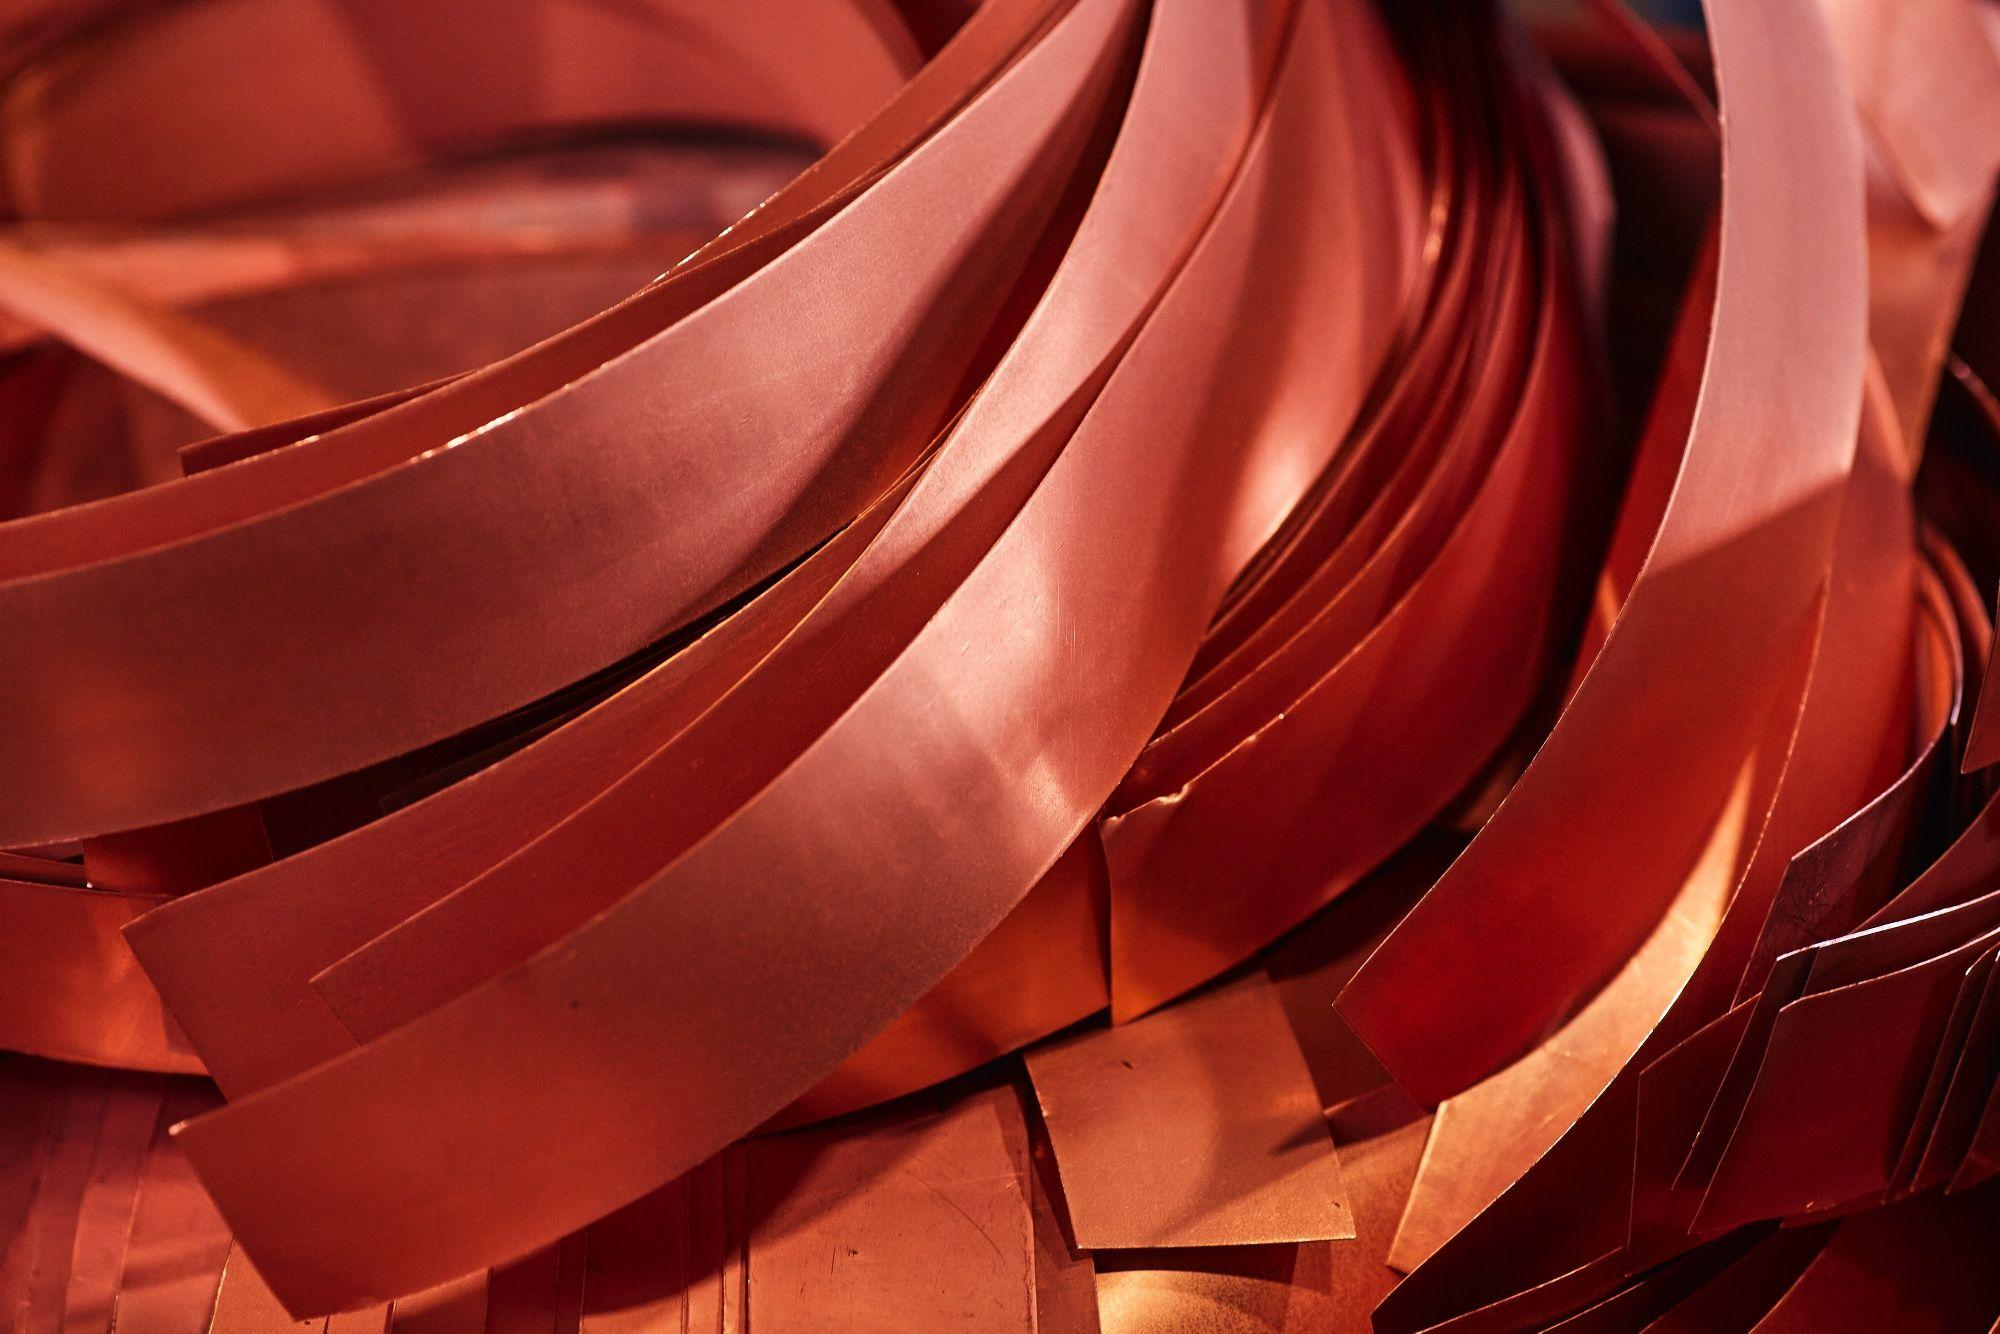 copper-surges-toward-$10,000-as-bulls-bet-on-global-rebound